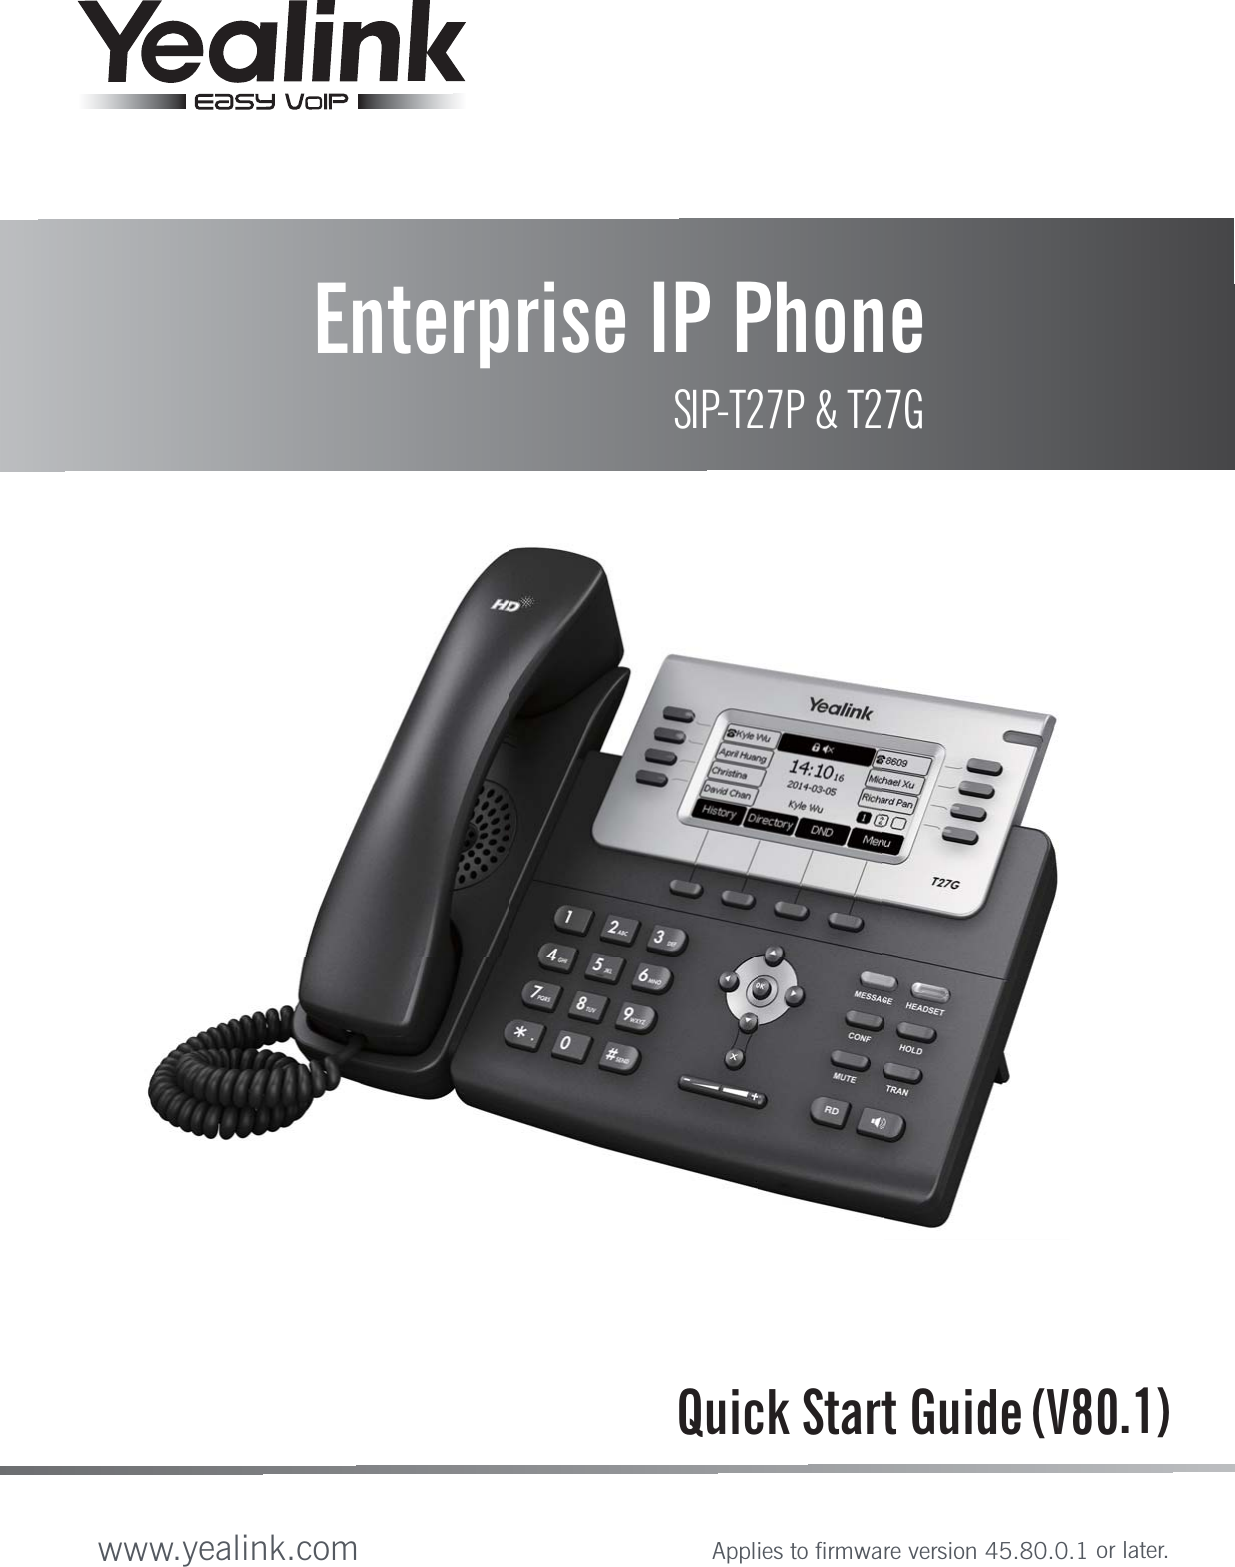 Quick Start Guide (V80.1)Enterprise IP PhoneSIP-T27P & T27Gwww.yealink.comApplies to firmware version 45.80.0.1 or later.